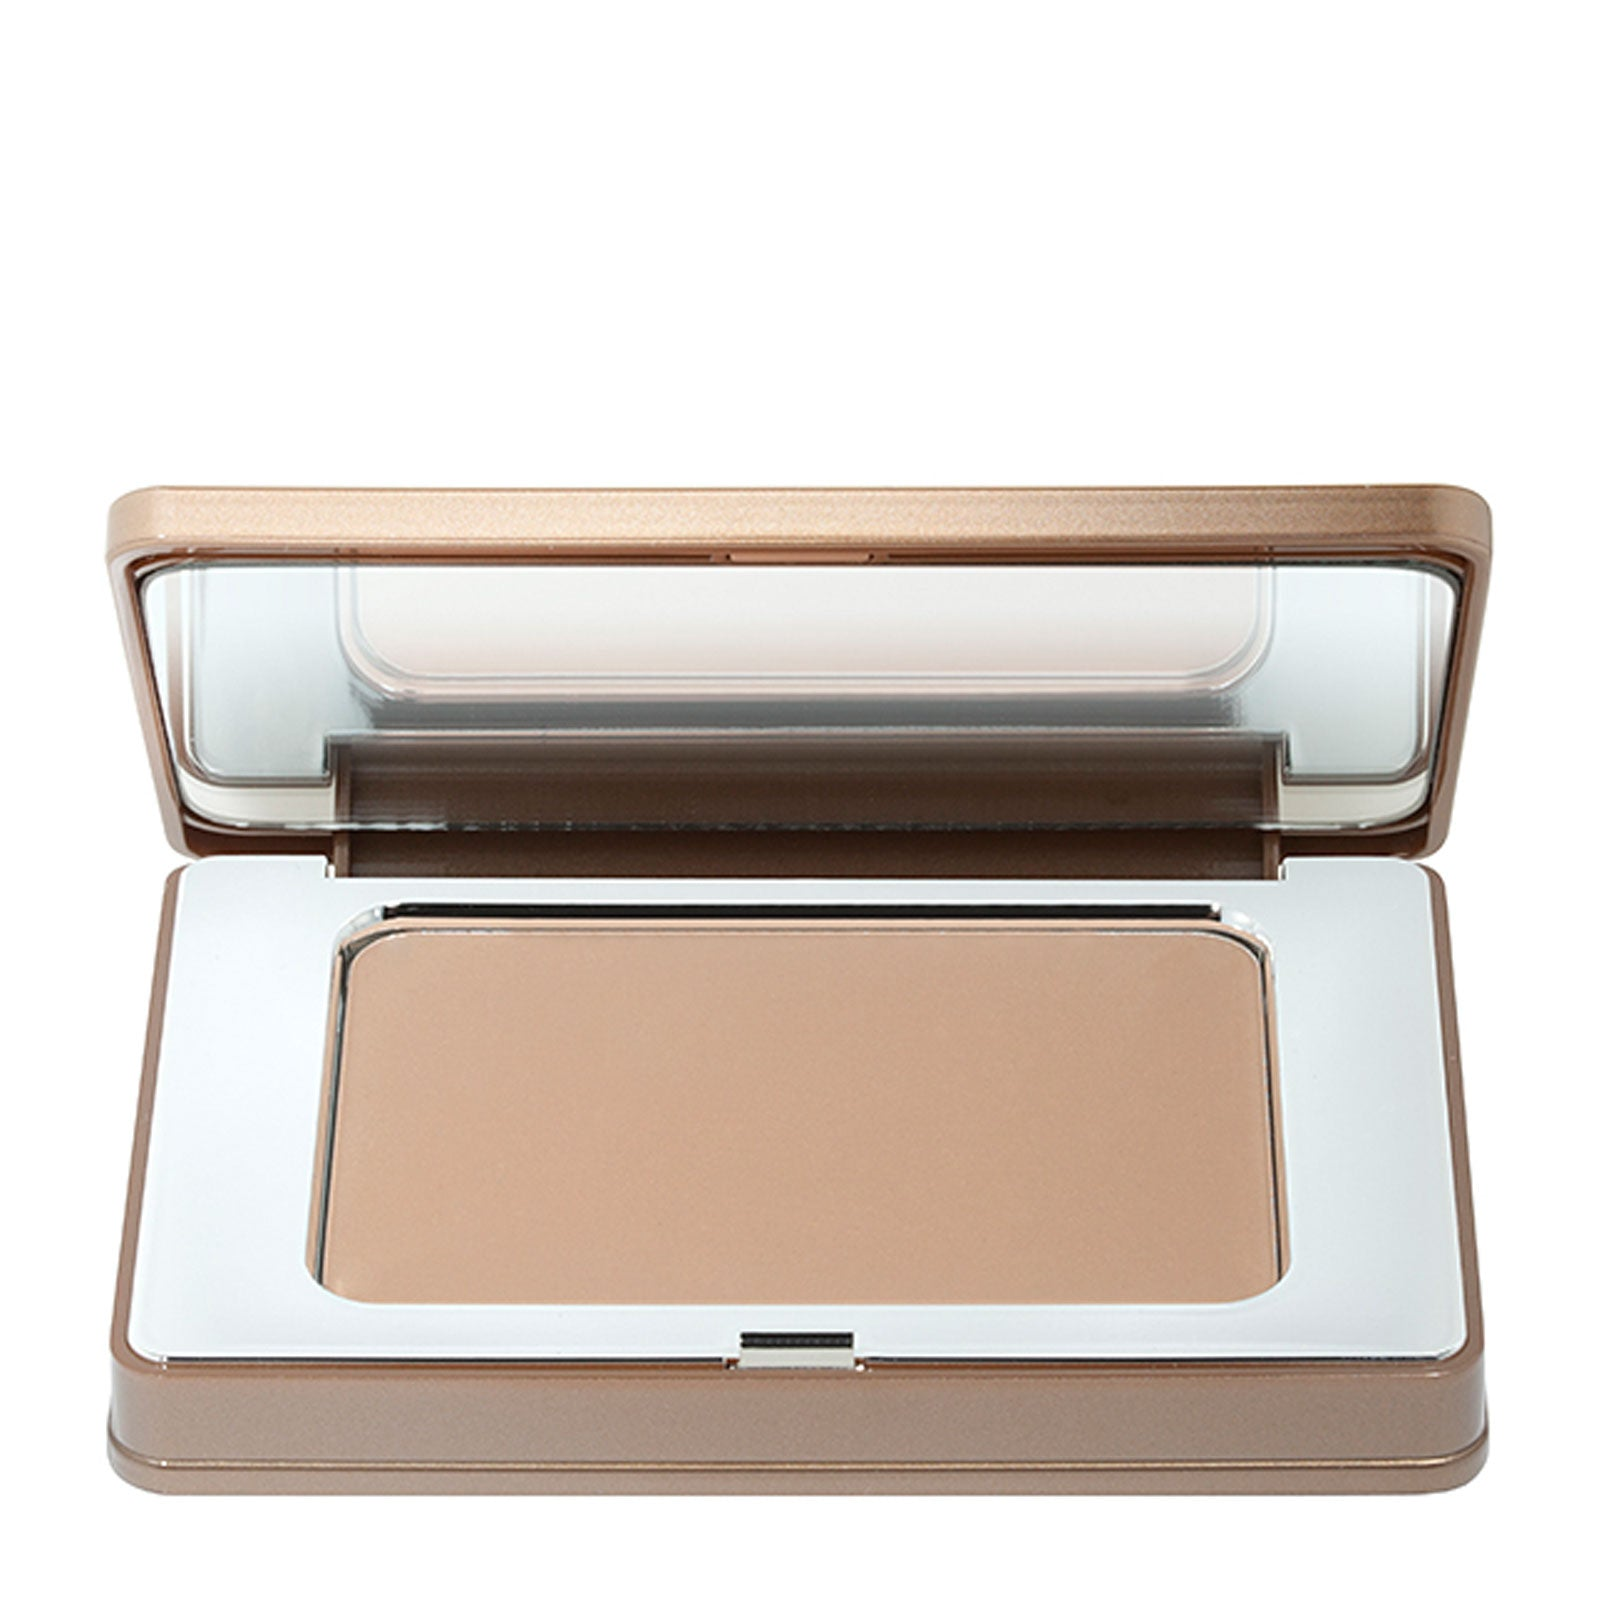 Natasha Denona Contour Sculpting Powder 10g